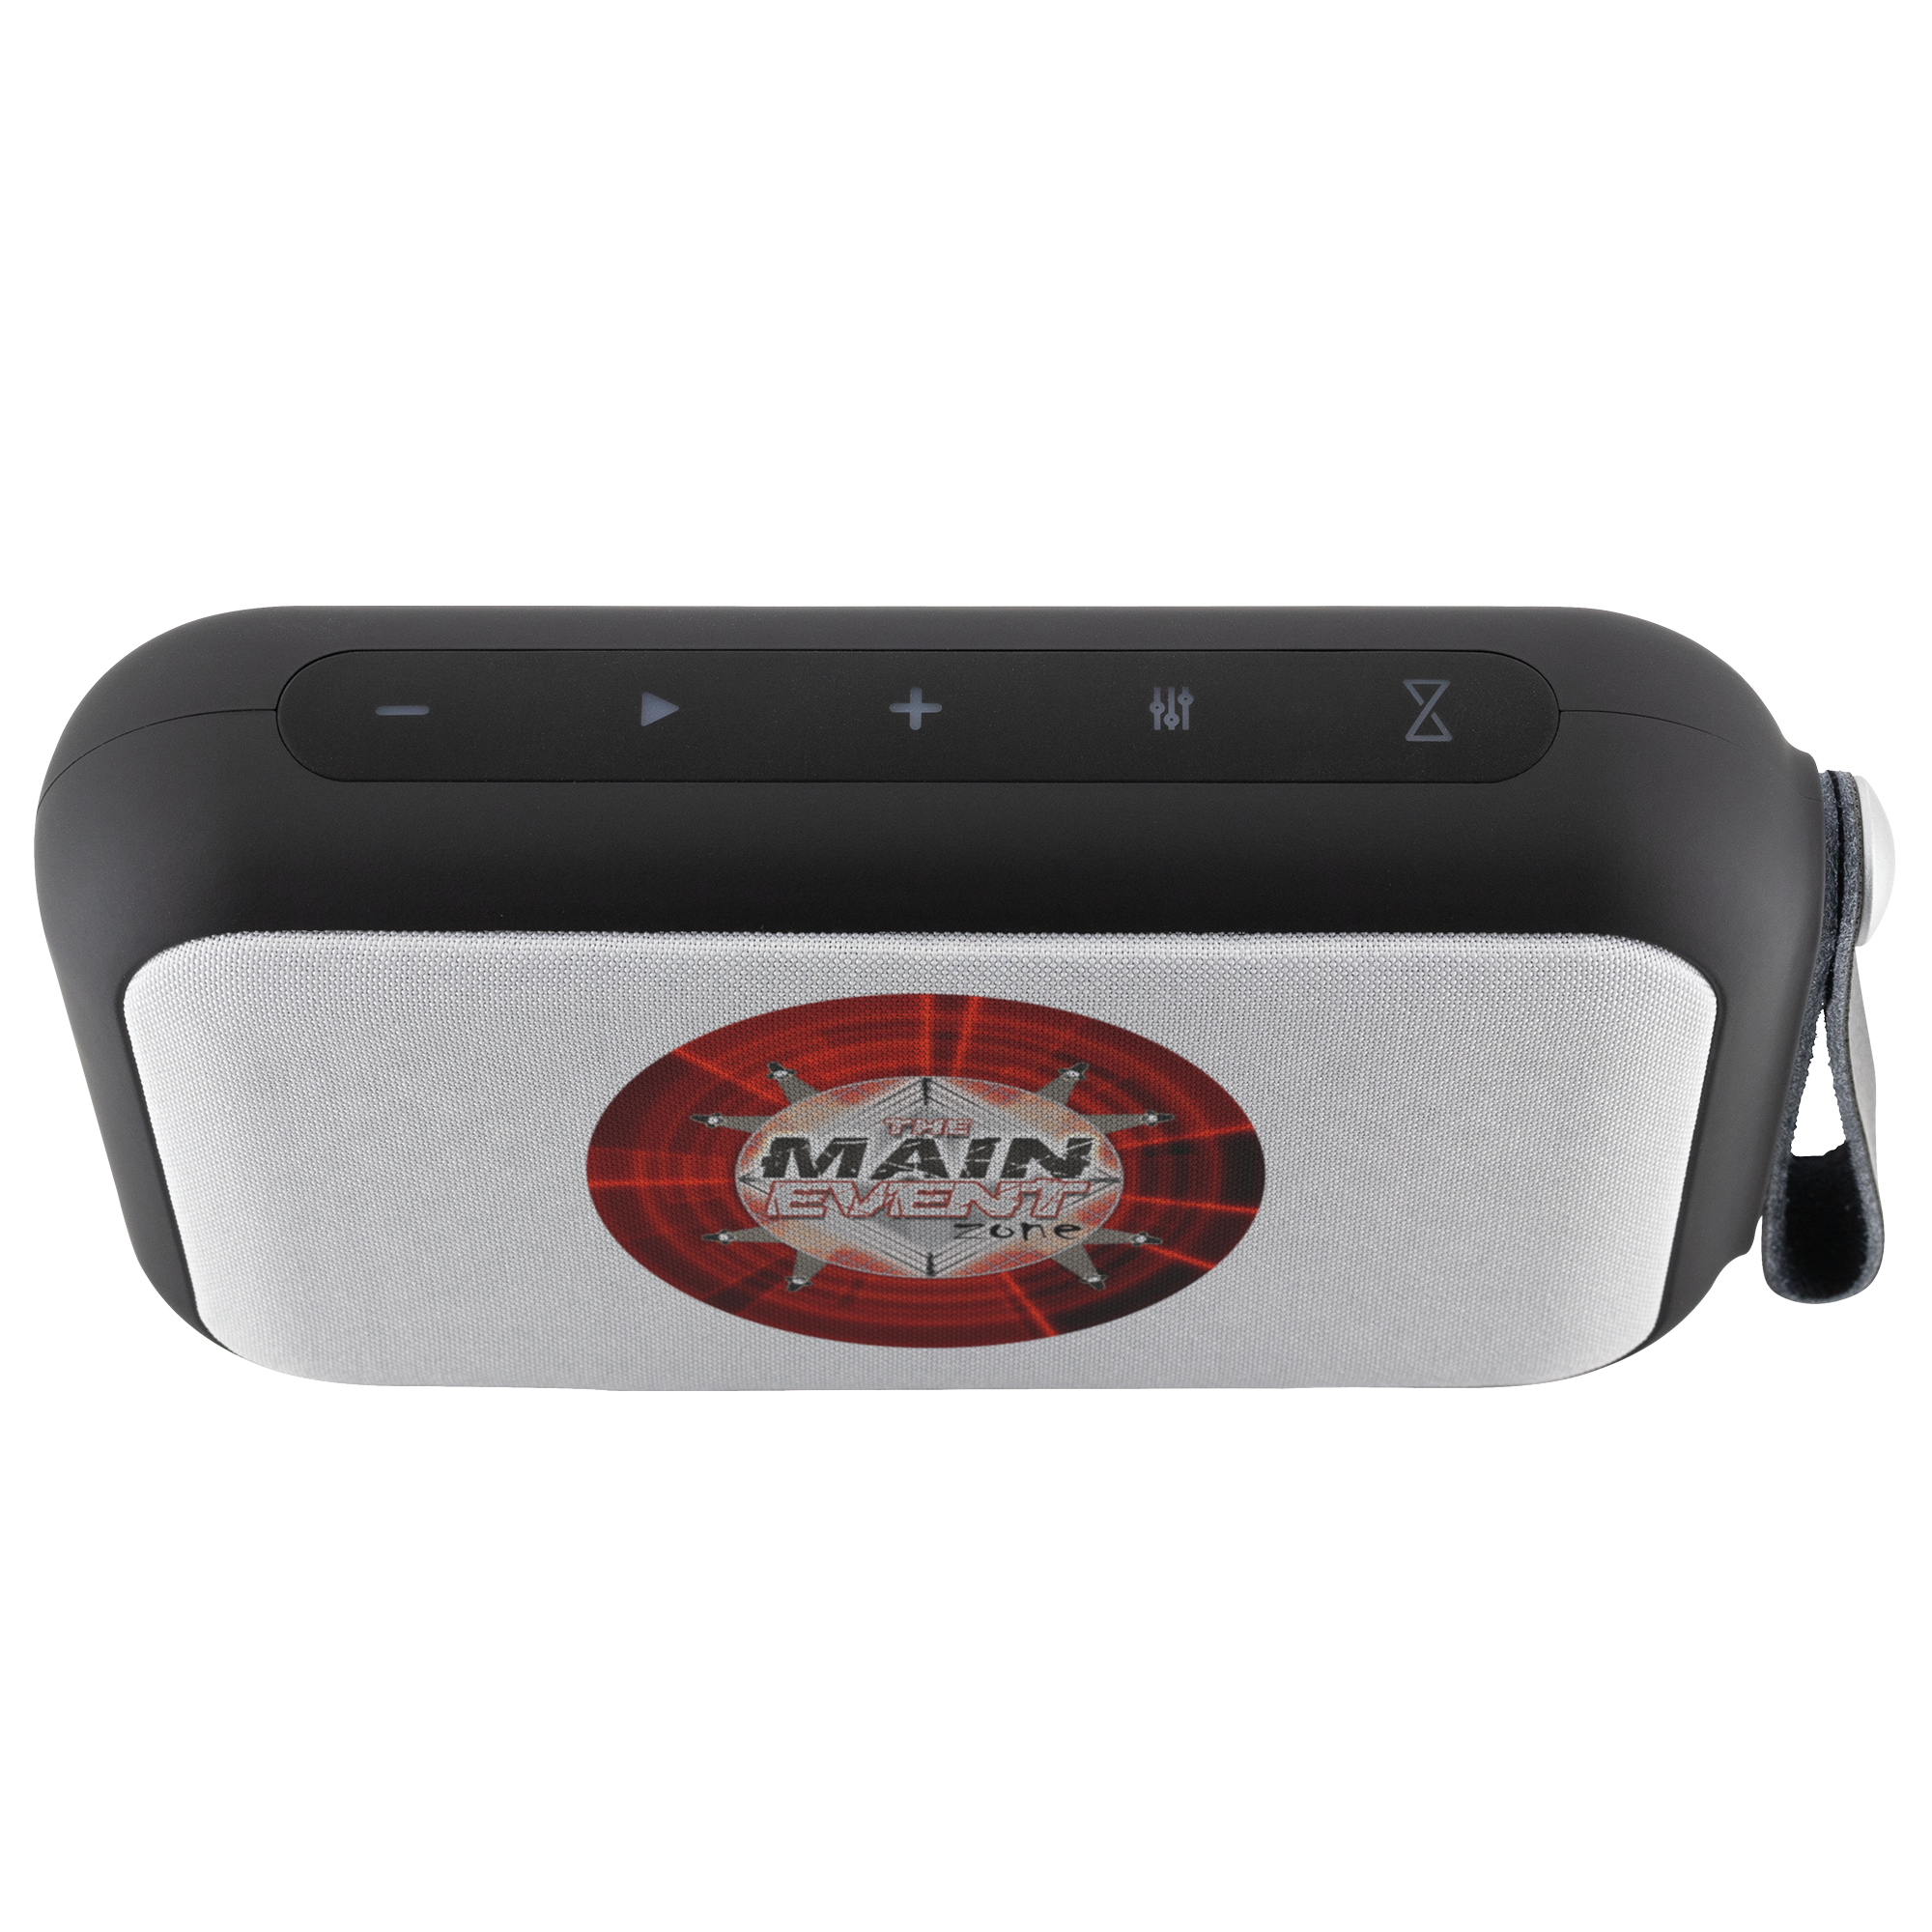 The Main Event Zone - Concentration Box - Bluetooth Speaker